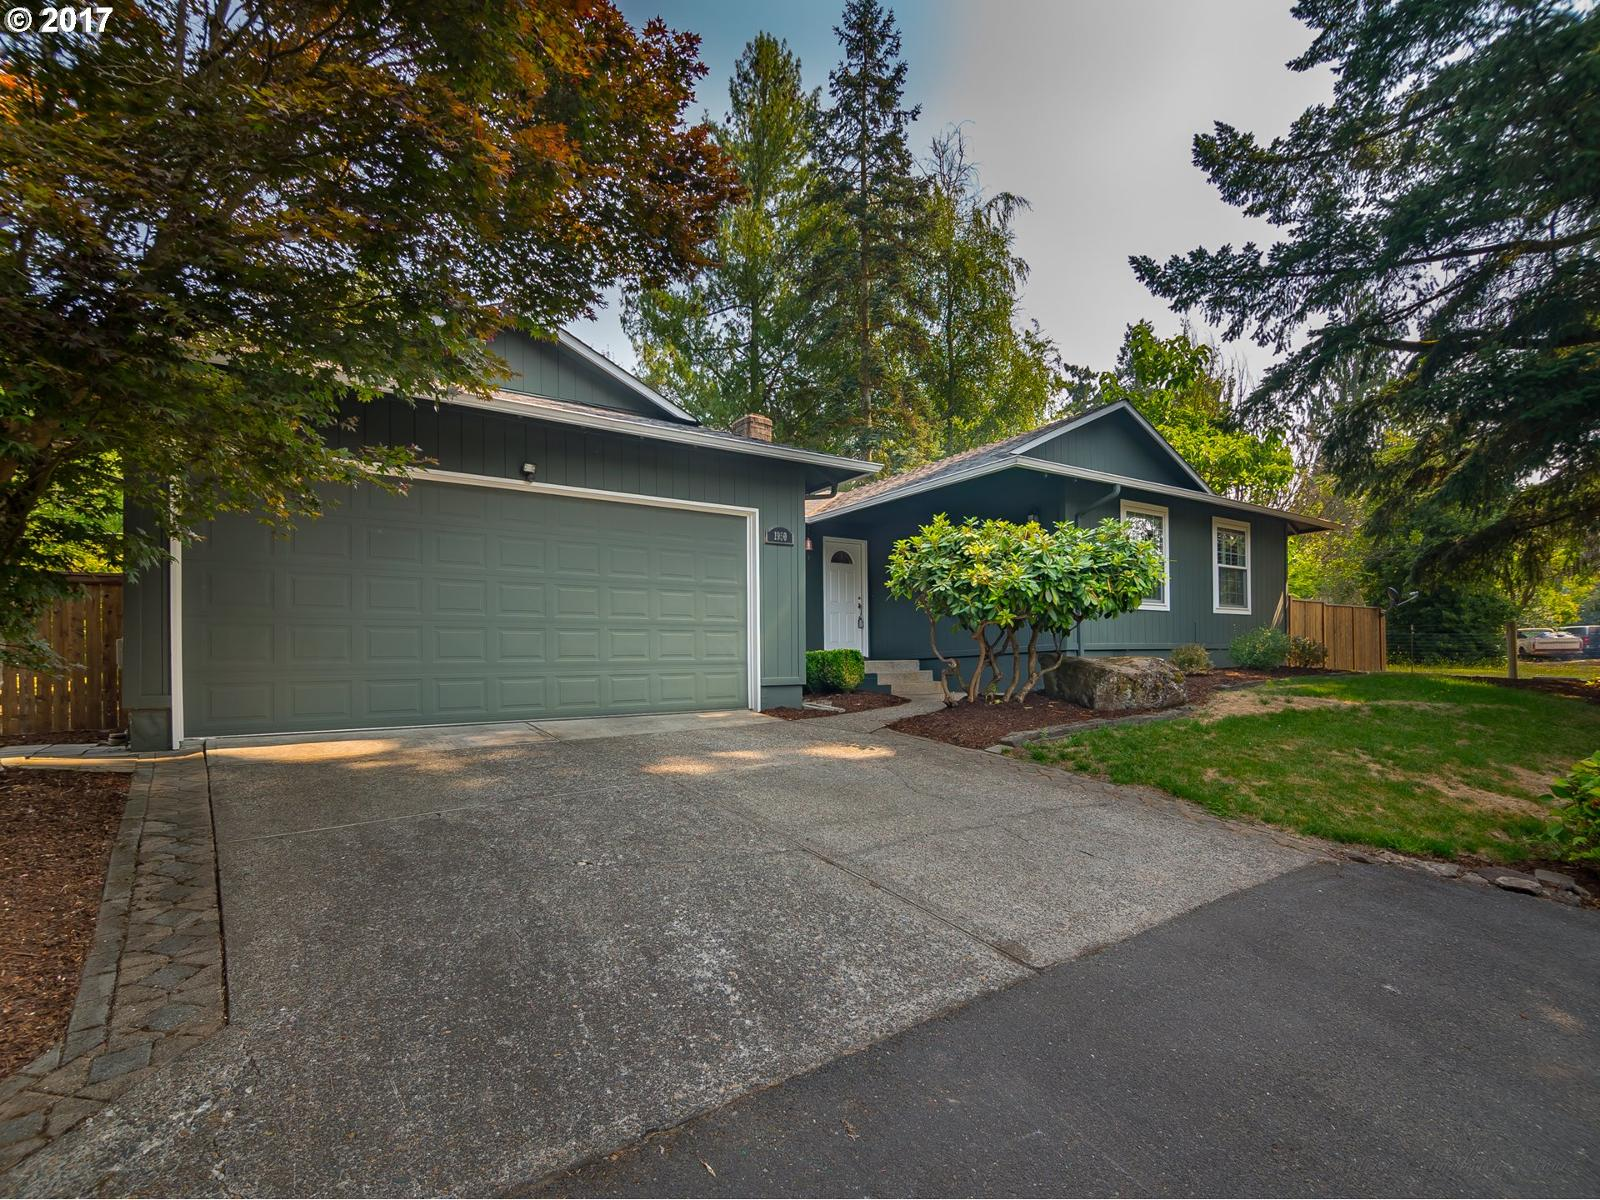 1950 Se Oak Shore Ln Milwaukie Or Mls 17143428 Better Homes And Gardens Real Estate